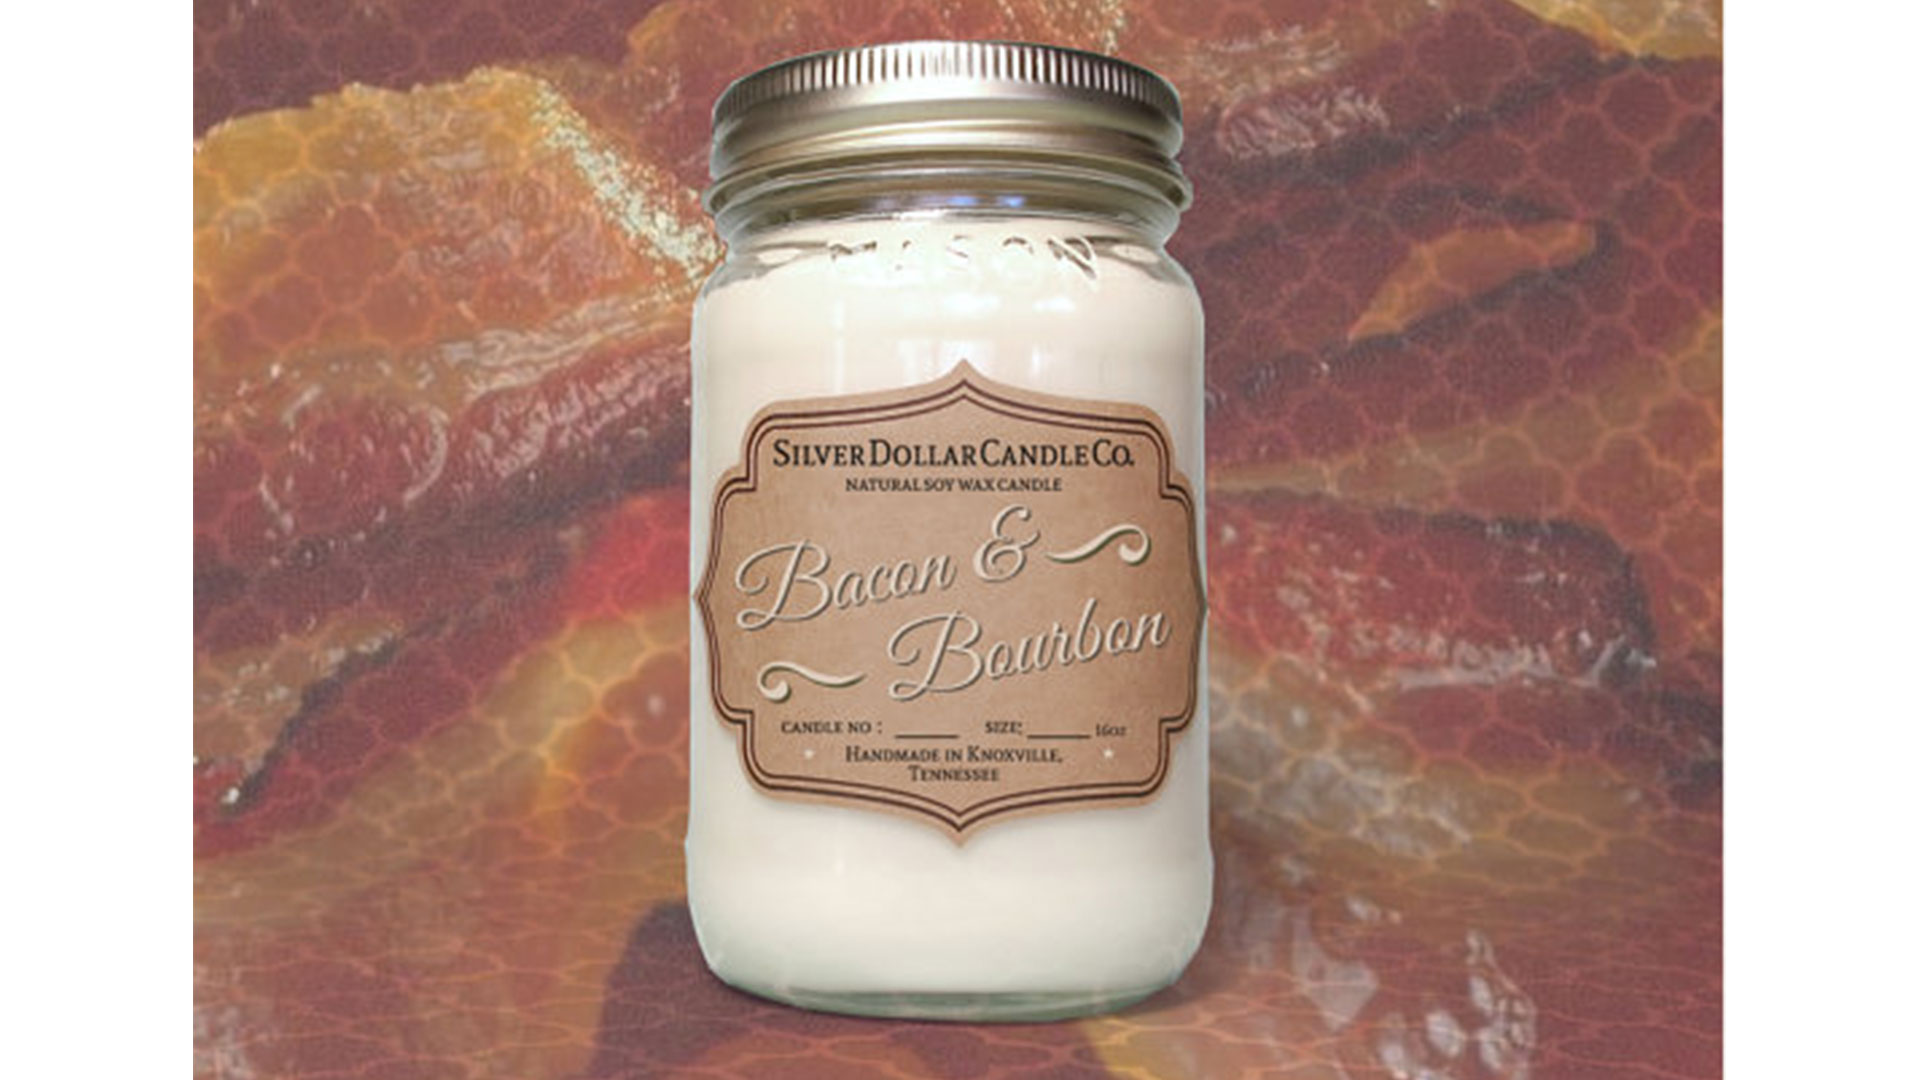 Bacon & Bourbon Candle